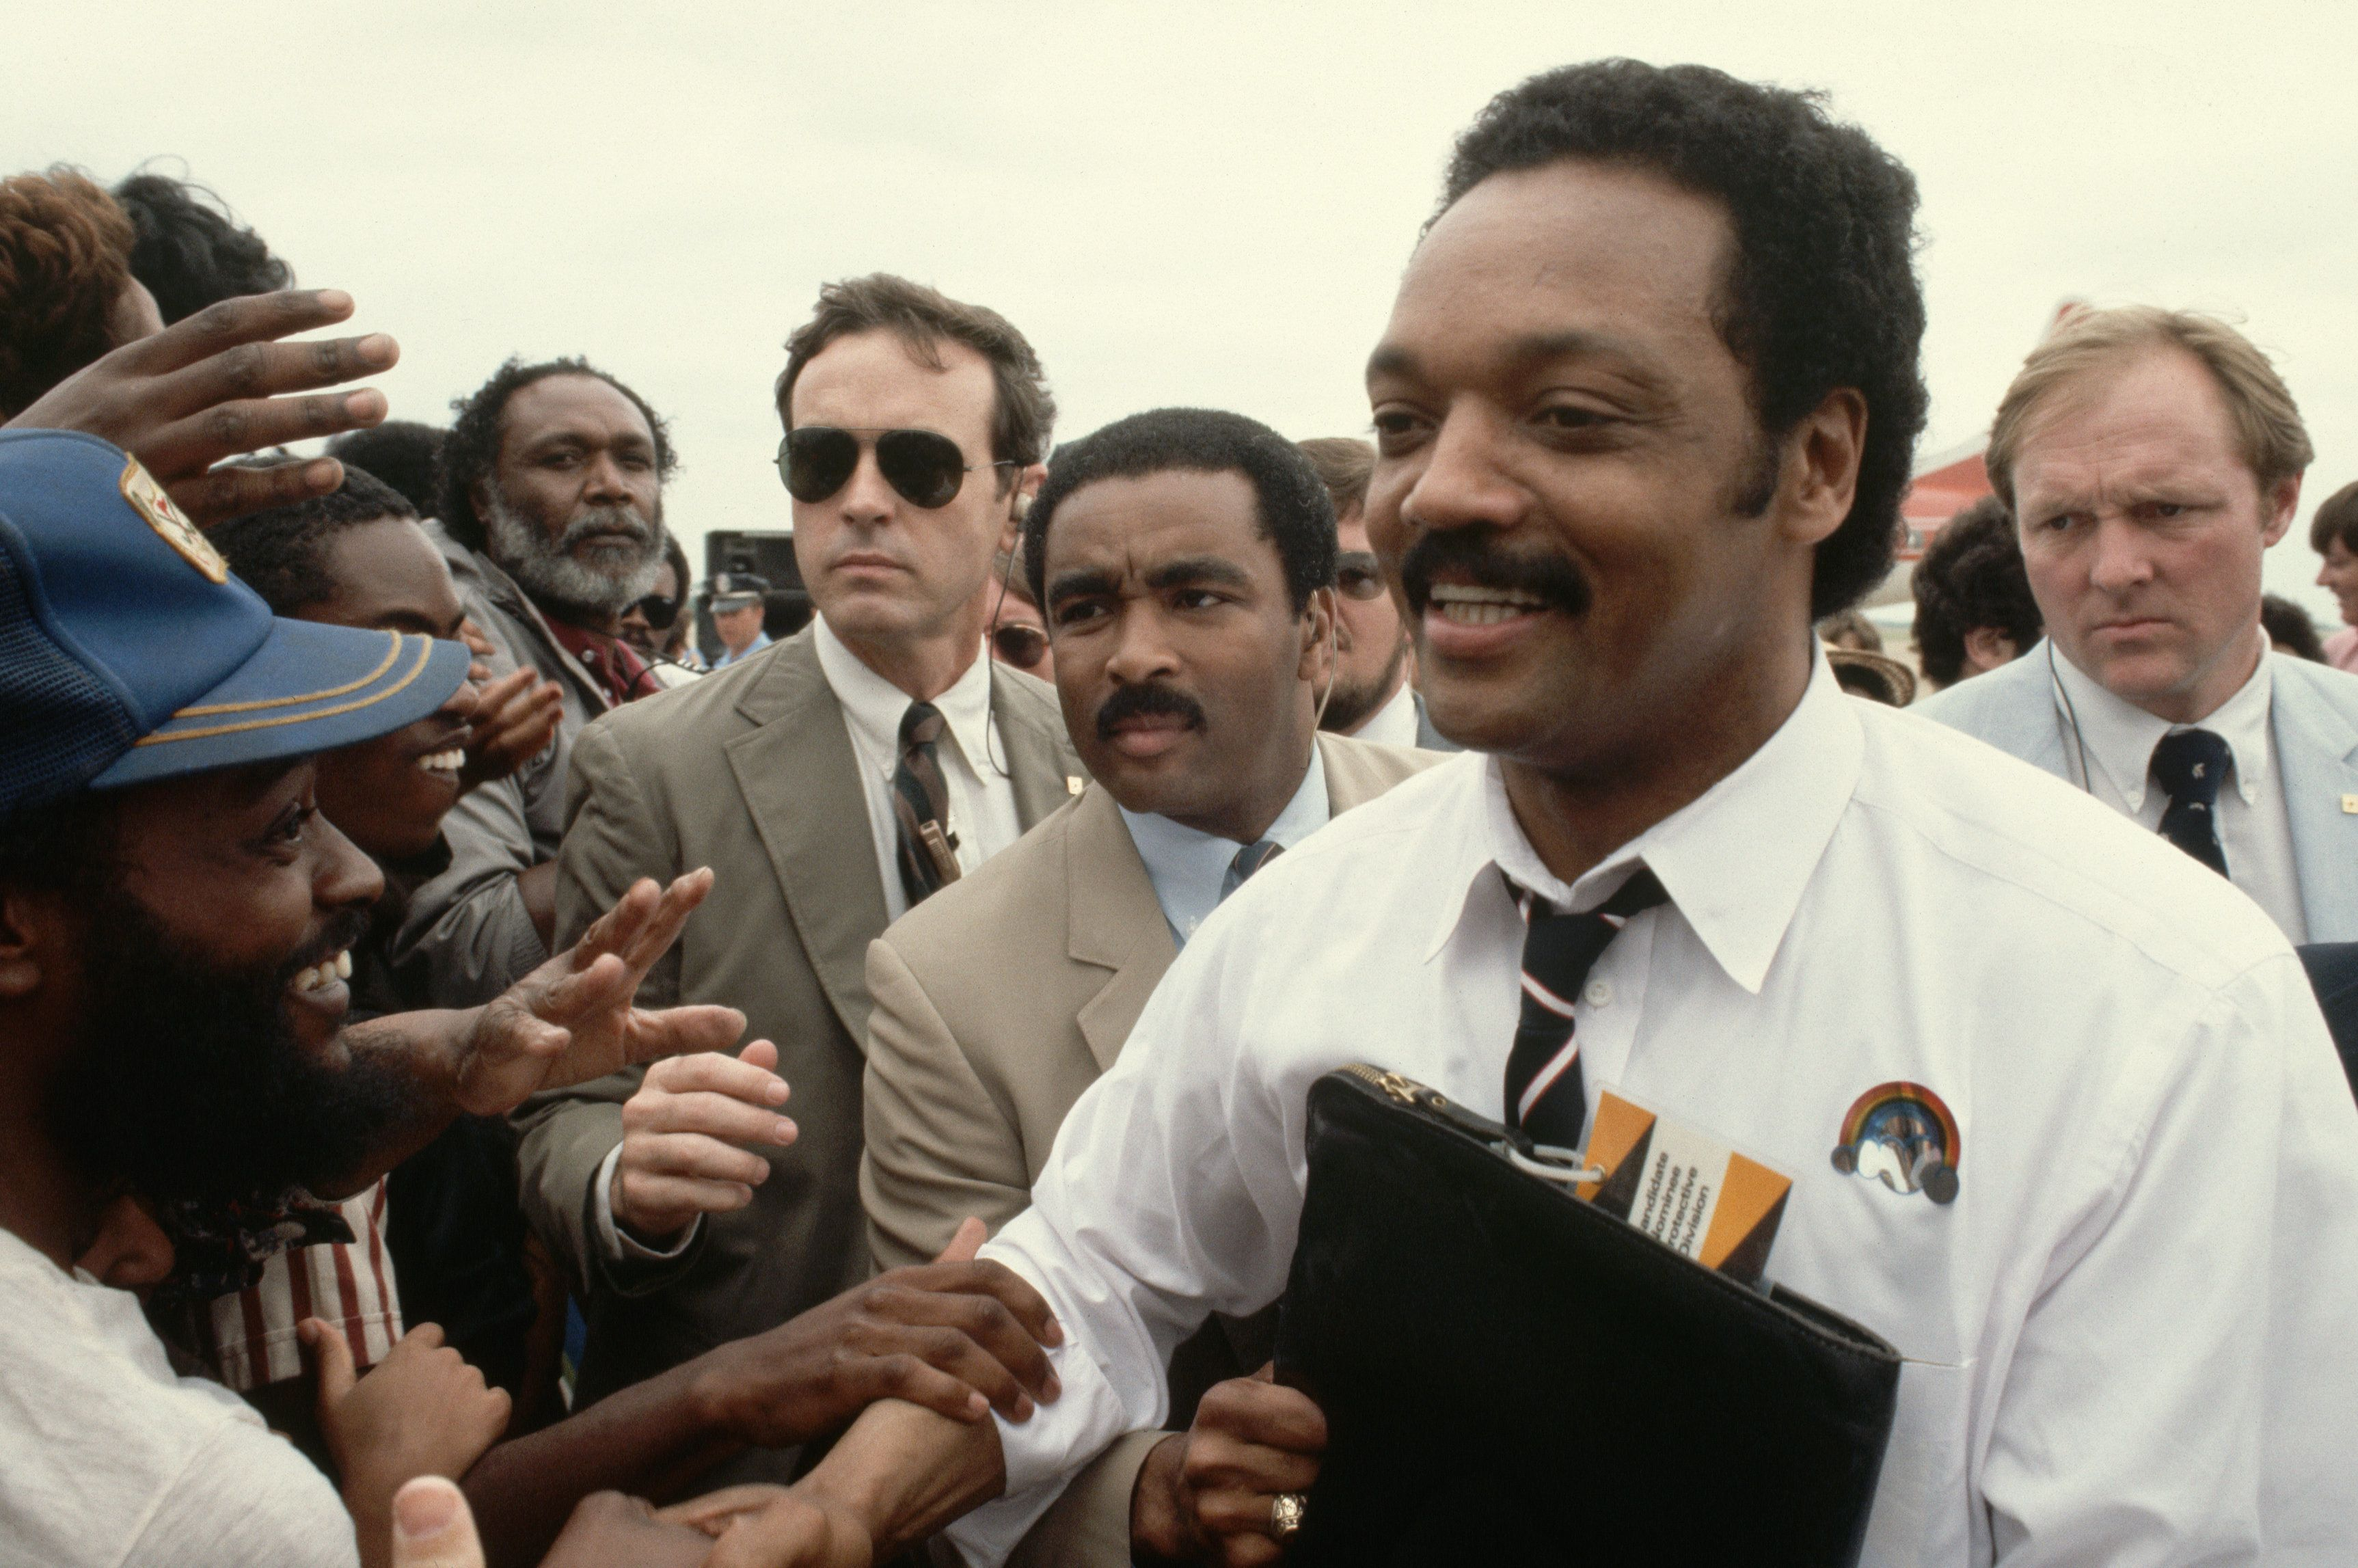 Jesse Jackson campaigns for president in 1984 at a stop in Texas.